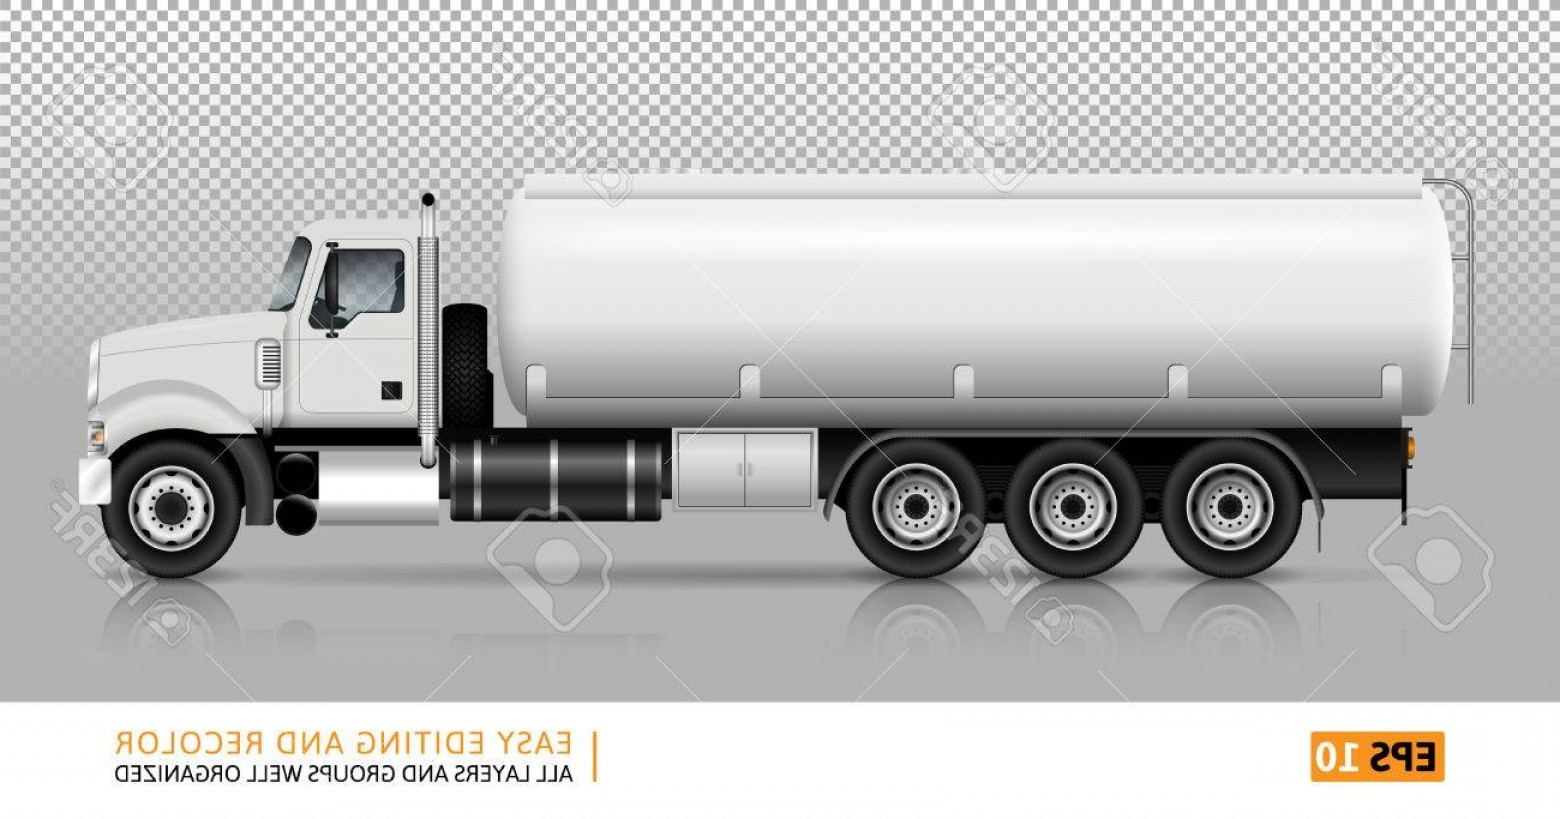 Vector Semi Tanker: Photostock Vector Tanker Truck Vector Template For Car Branding And Advertising White Fuel Semi Truck On Transparent B